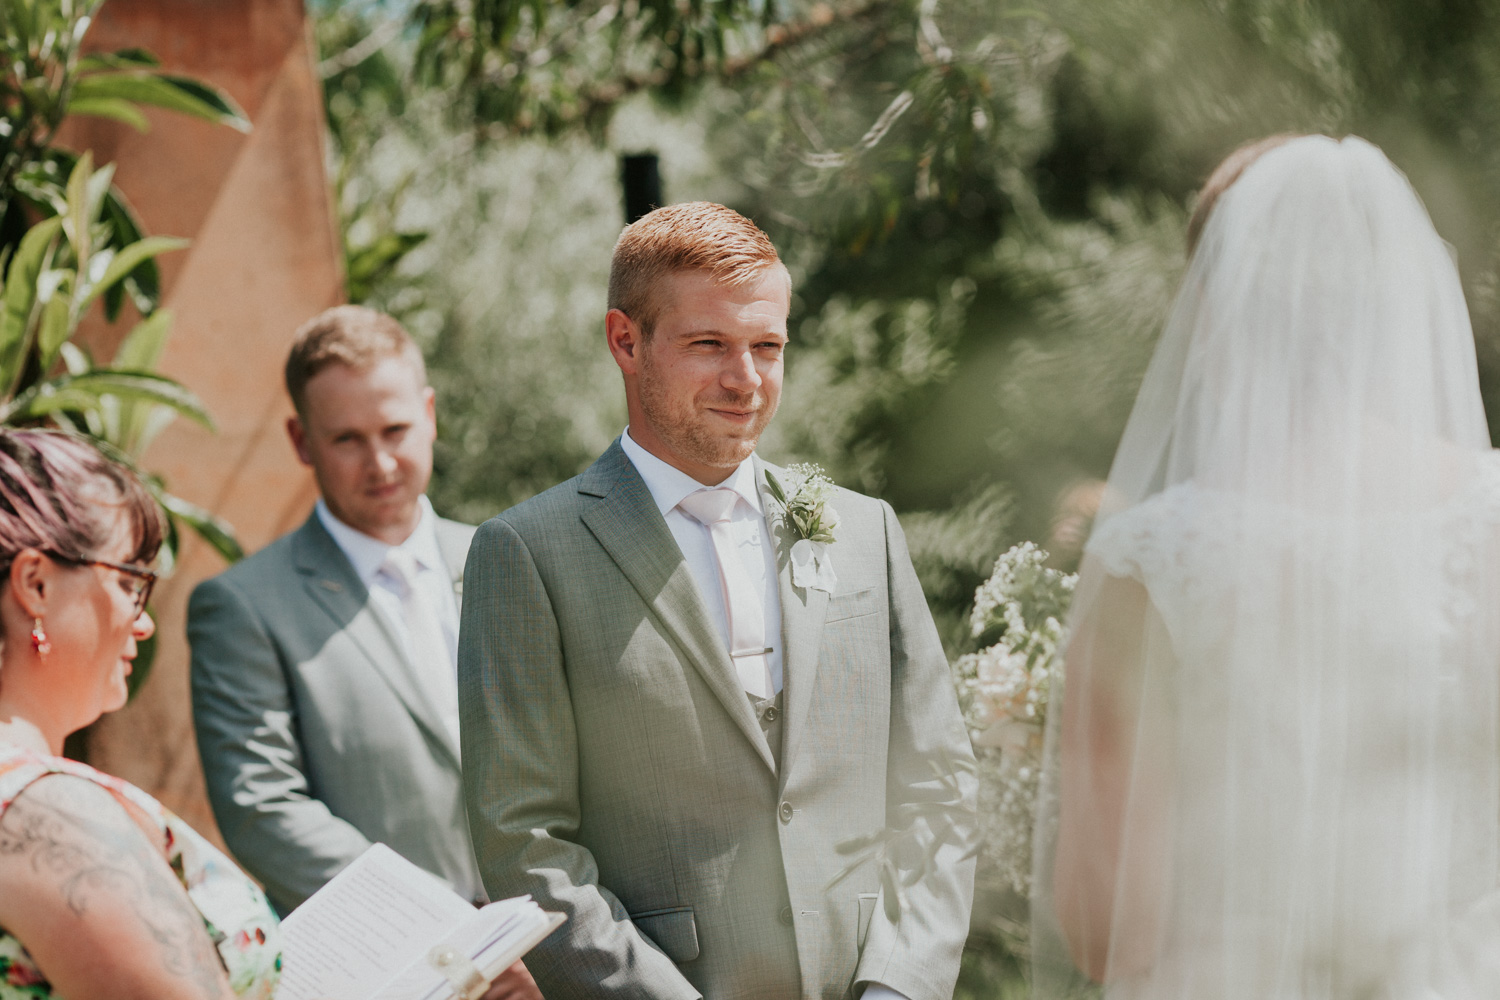 Groom saying his wedding vows